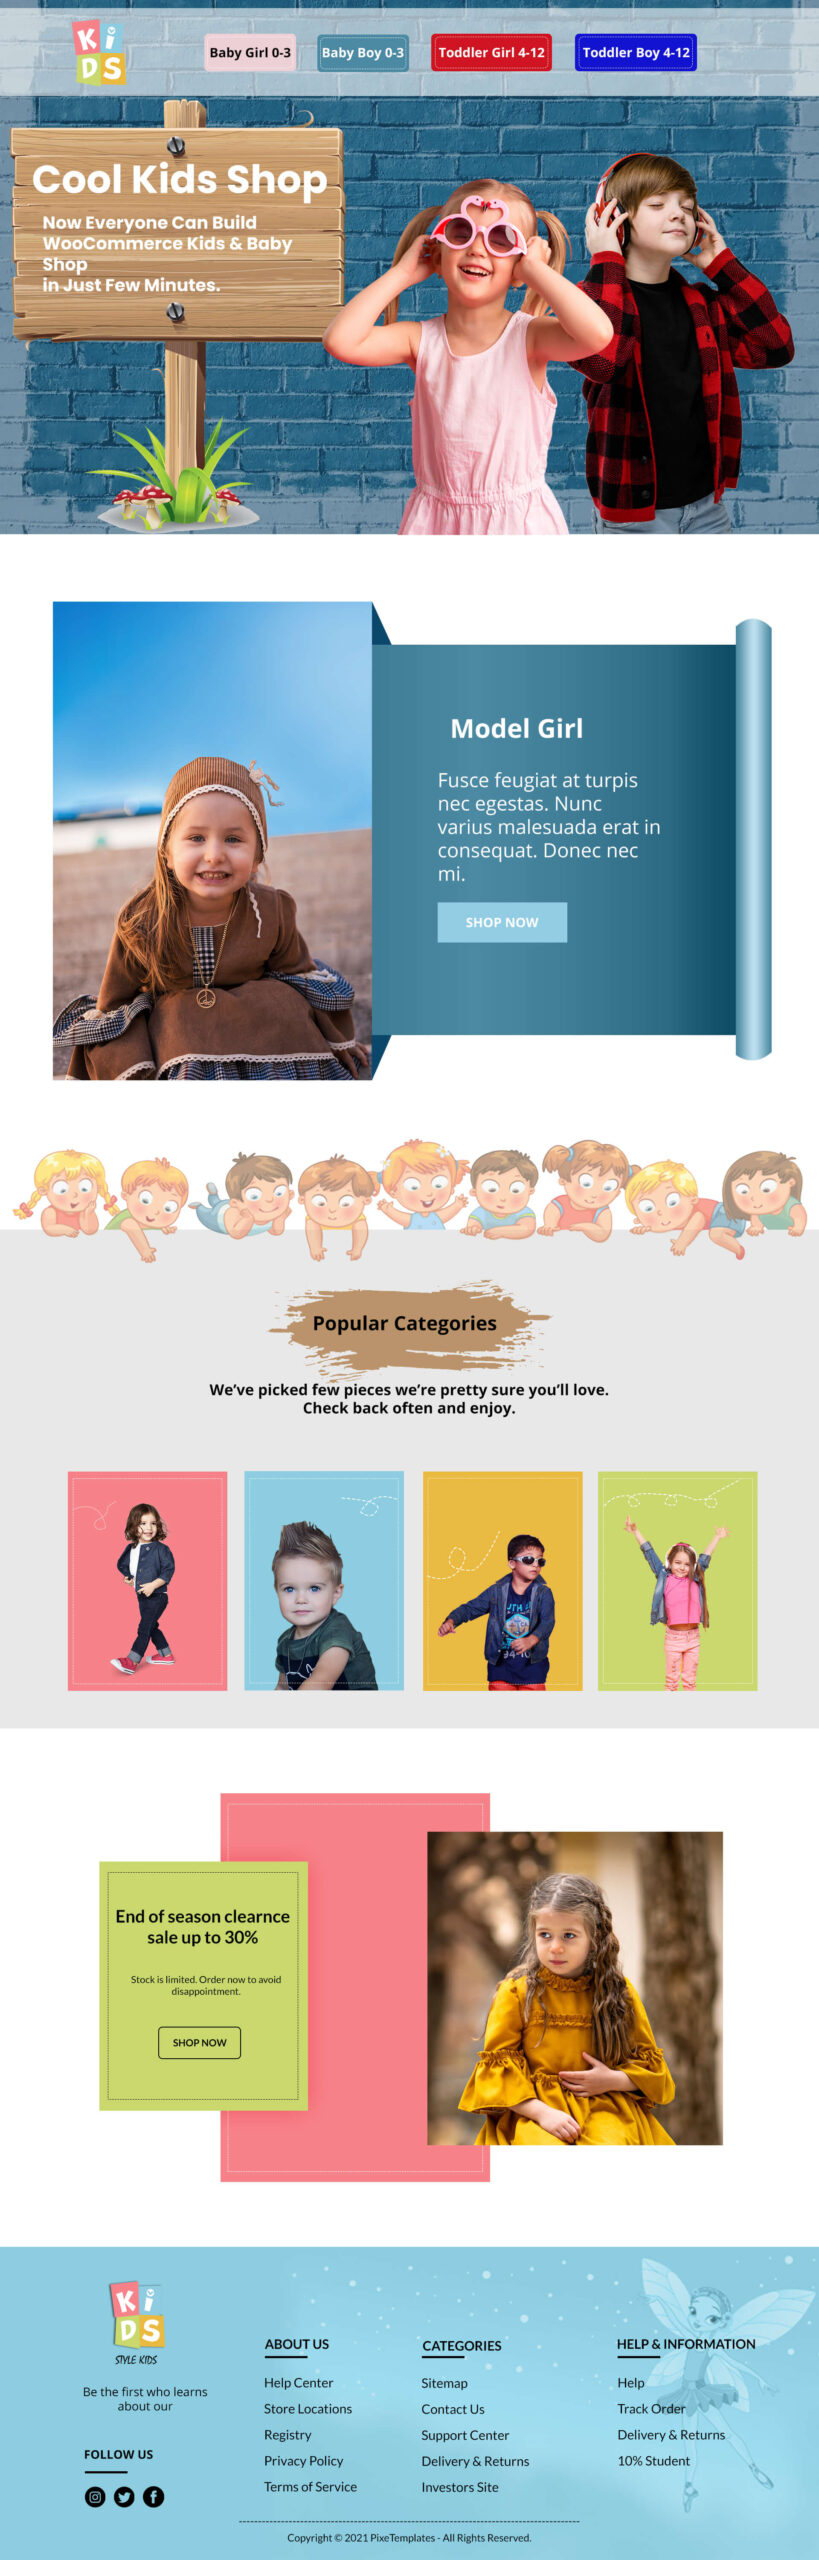 Kids Collection - Free Photoshop Template for Kids Shop